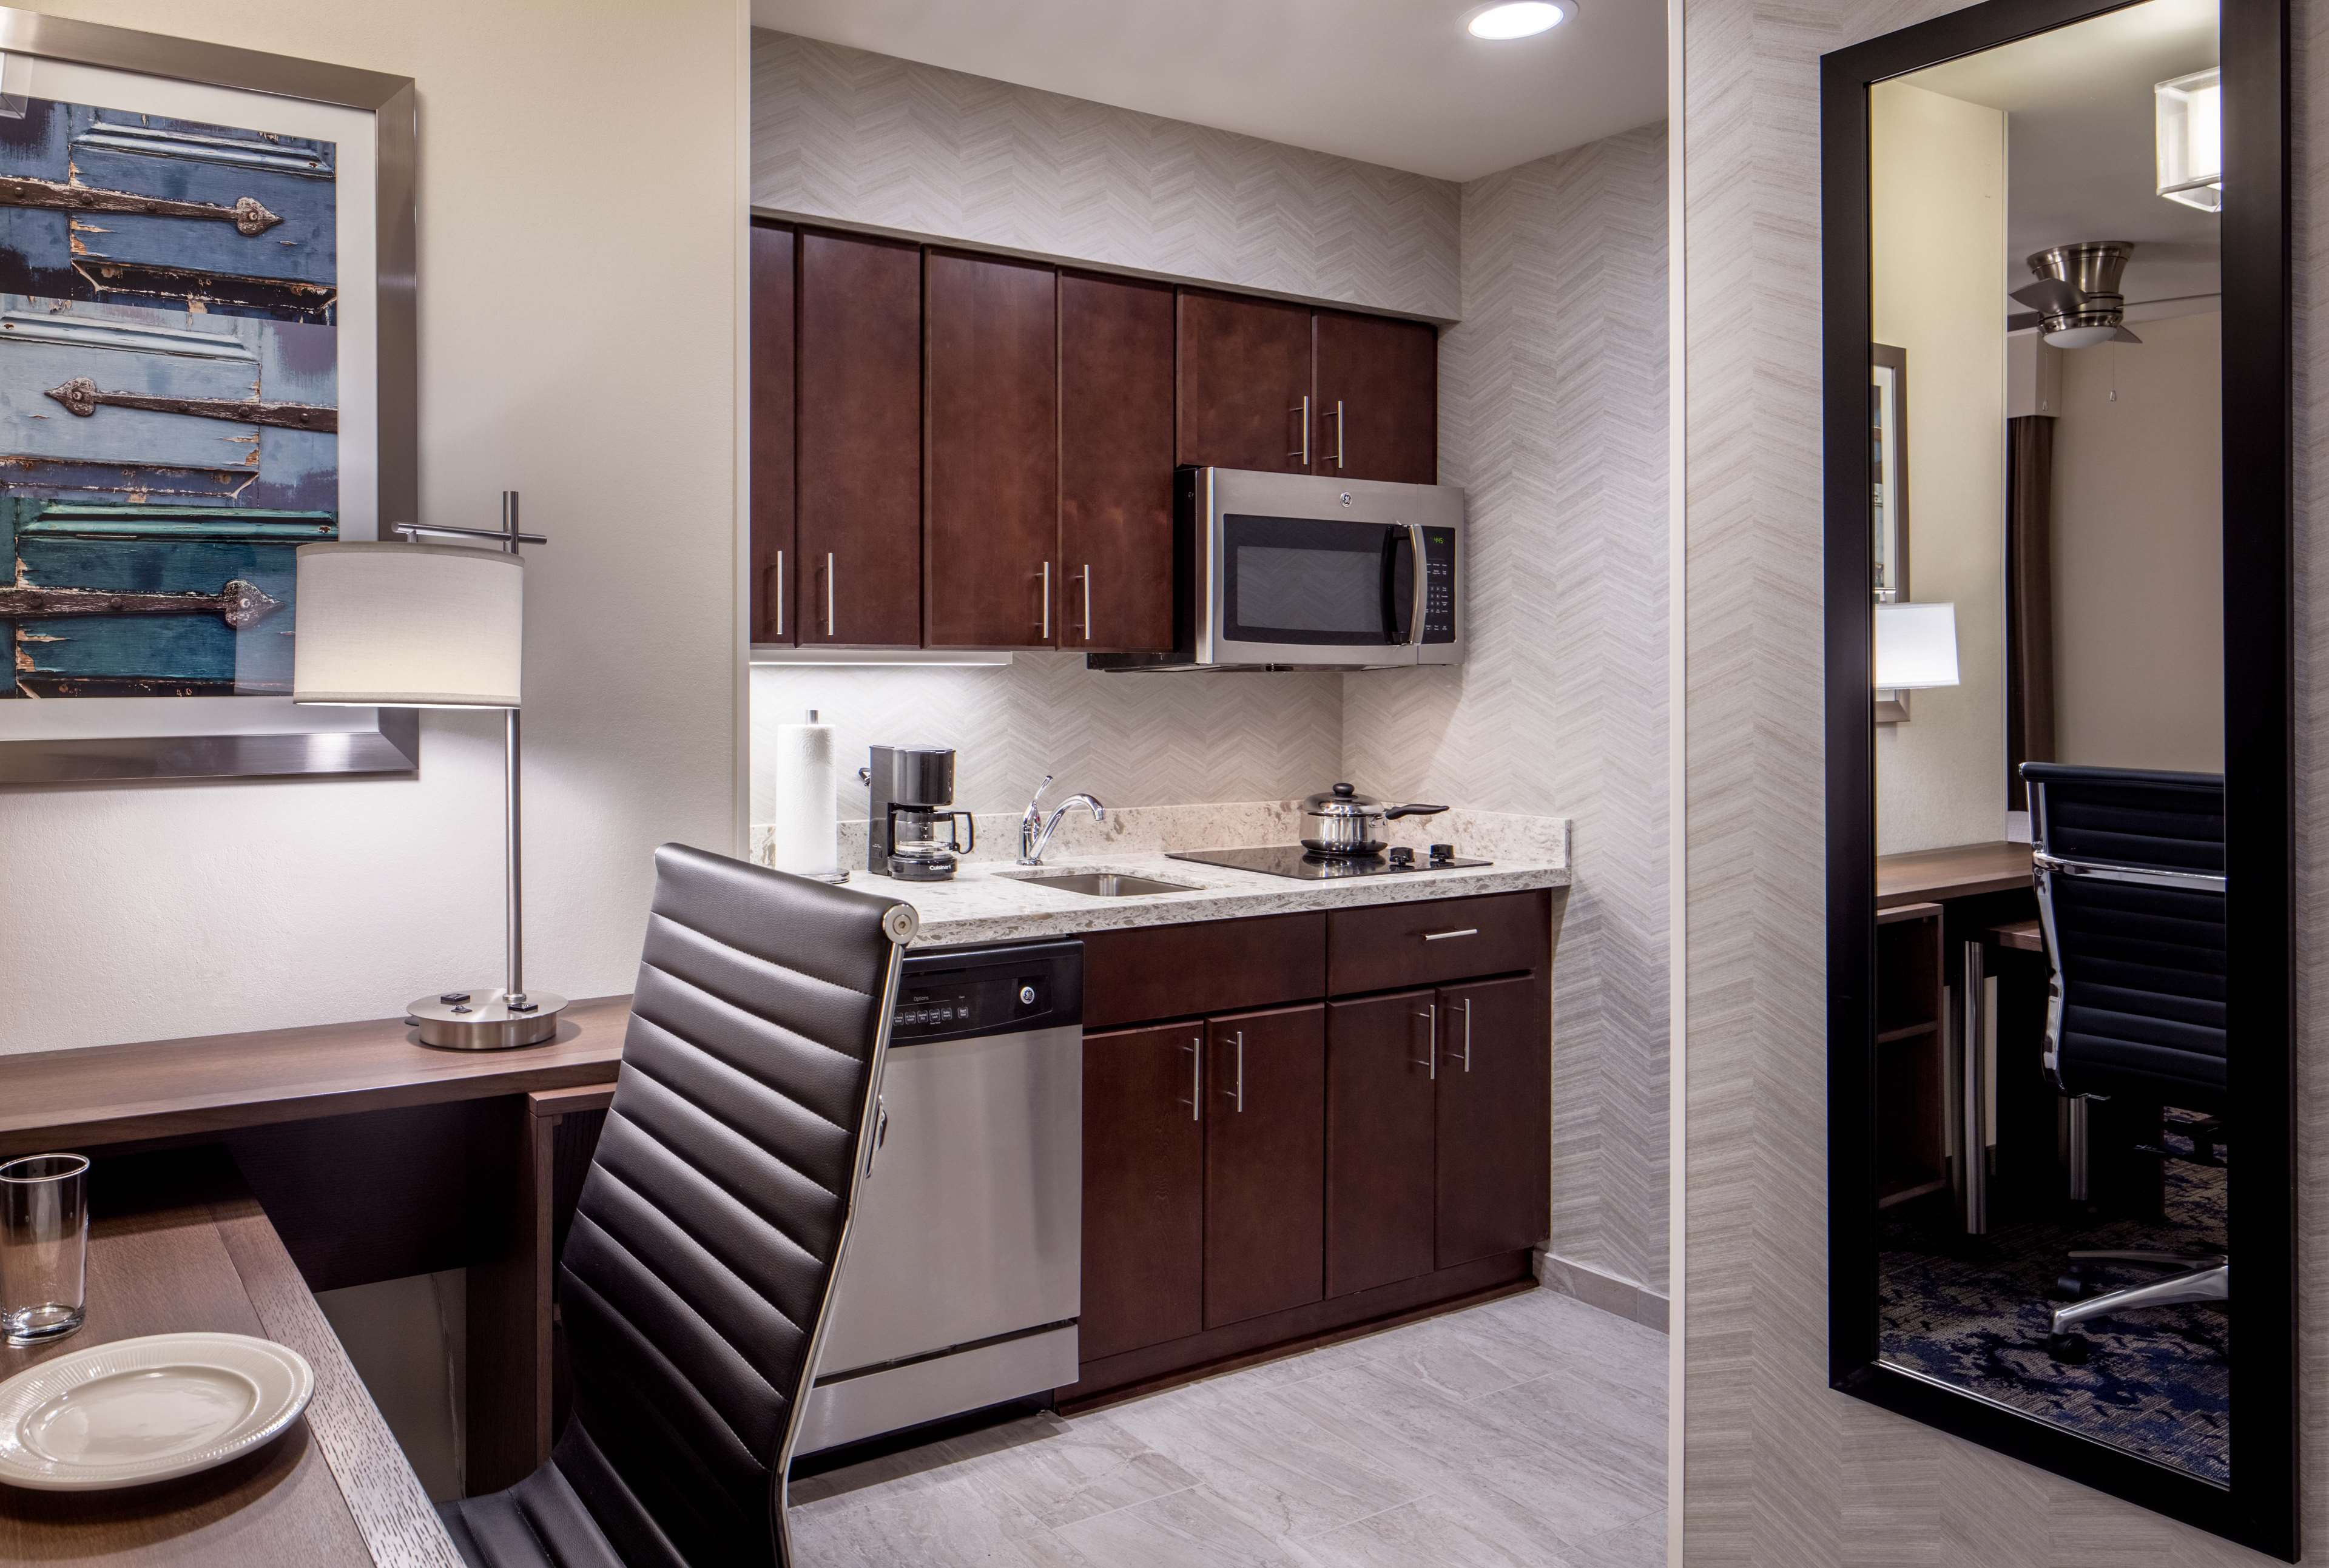 Homewood Suites by Hilton New Orleans French Quarter image 43